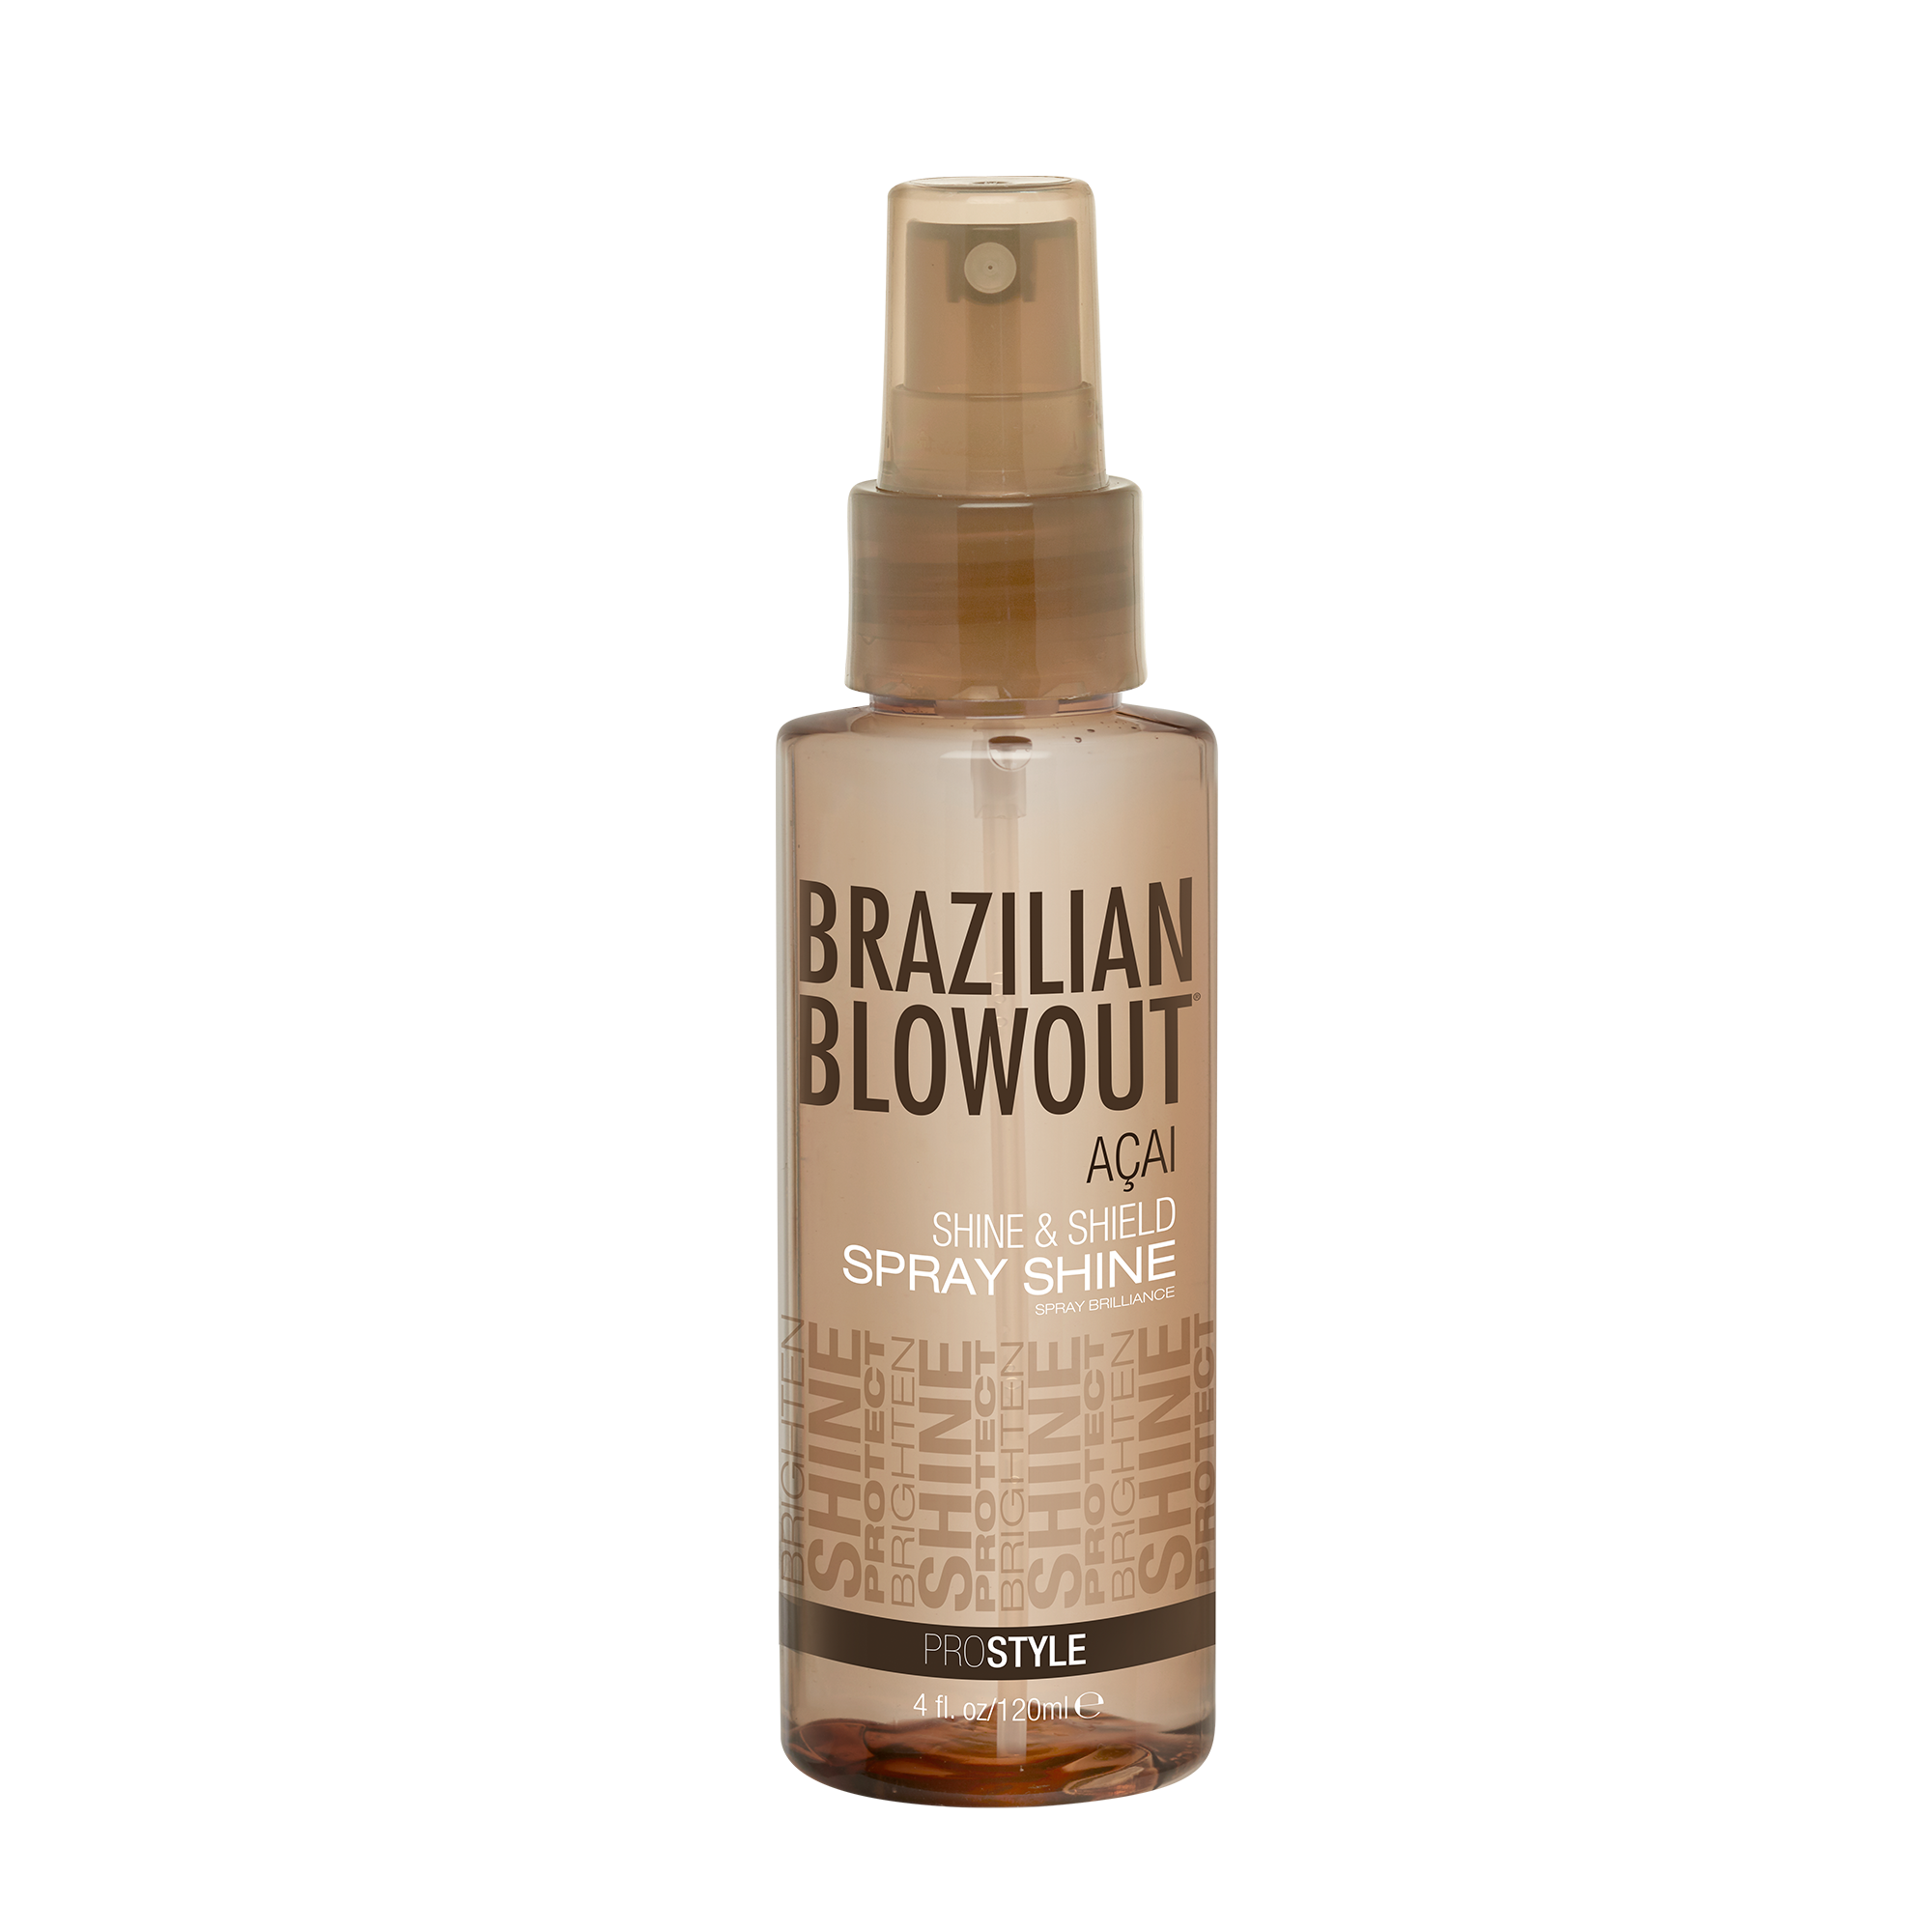 Brazilian Blowout Professional Hair Smoothing Treatment Brazilian Blowout Best Hair Oil Blowout Spray